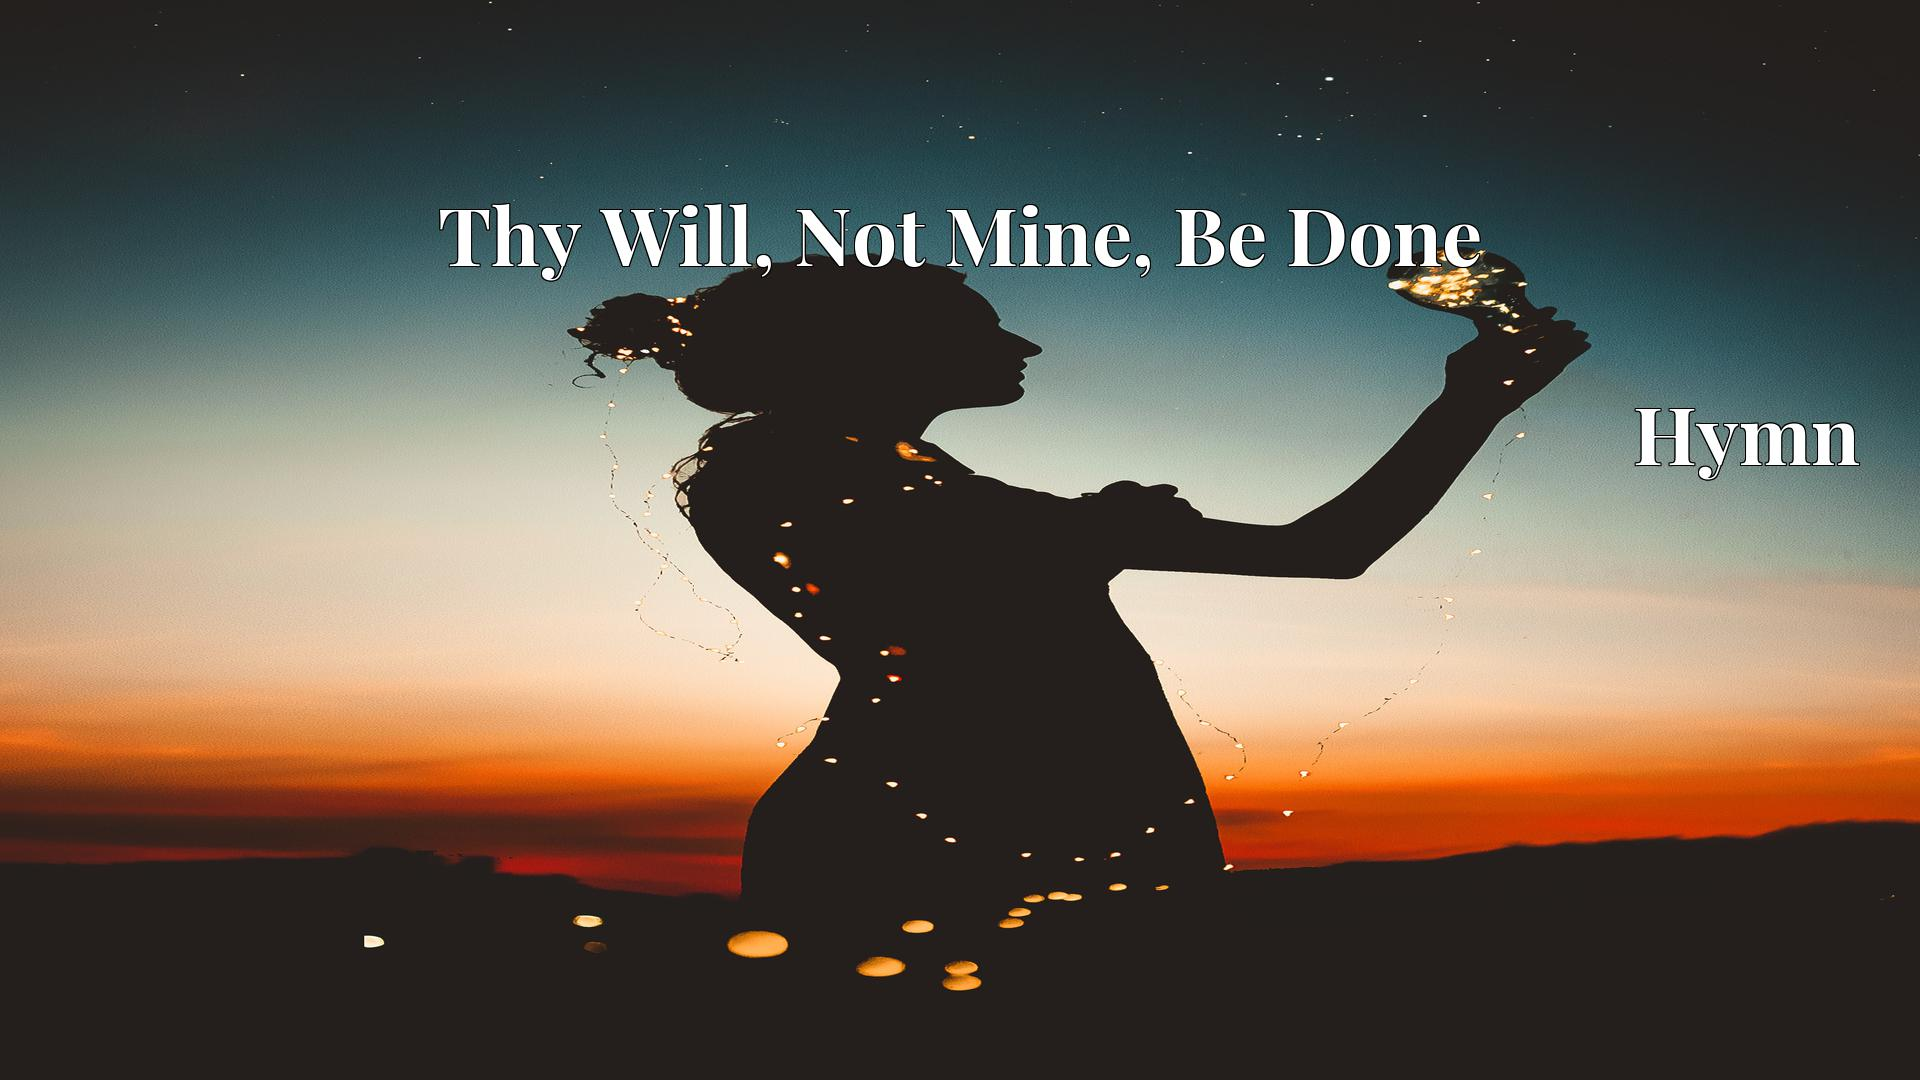 Thy Will, Not Mine, Be Done - Hymn